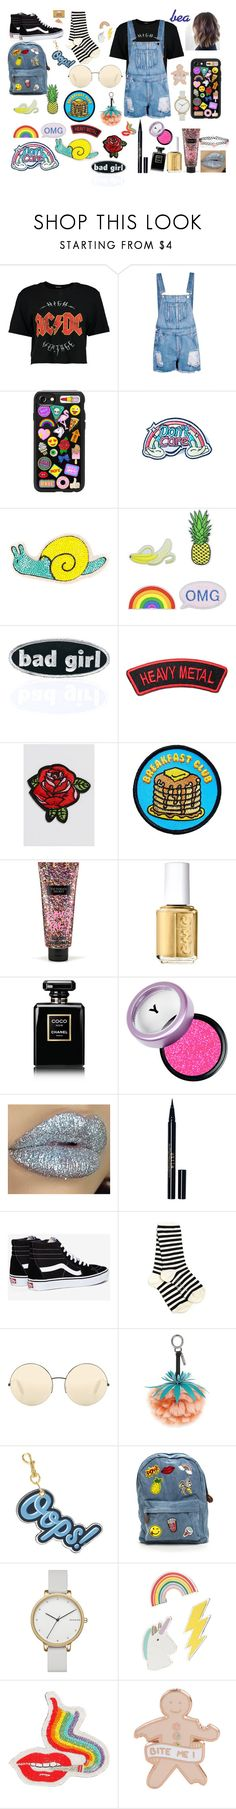 """""""grunge/90s look"""" by except ❤ liked on Polyvore featuring Boohoo, Casetify, Eye Candy, Olympia Le-Tan, C&D Visionary, maurices, Goblinko Megamall, Victoria's Secret, Essie and Chanel"""